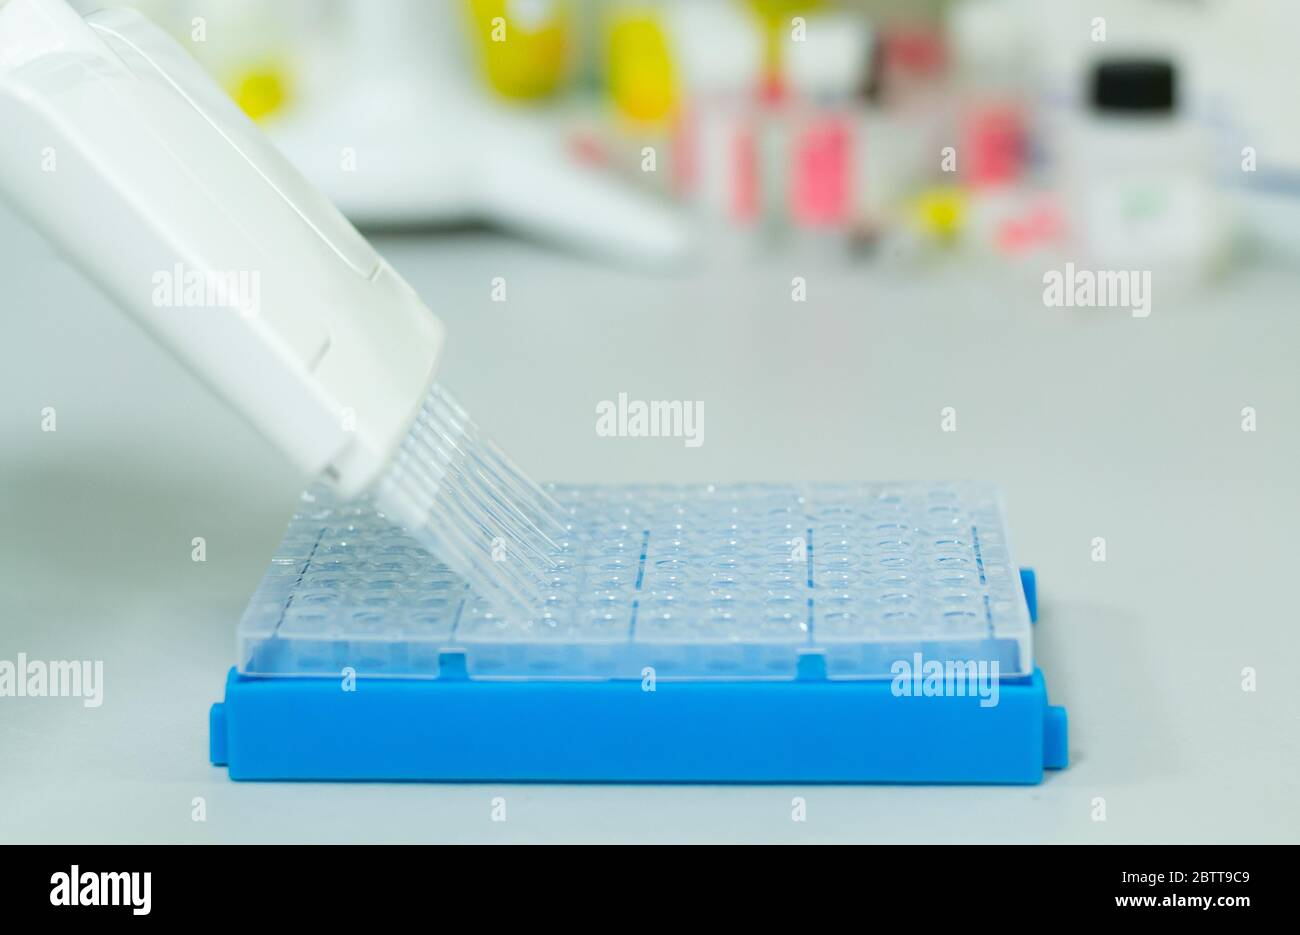 Löschdecke Test Thermocycler High Resolution Stock Photography And Images - Alamy